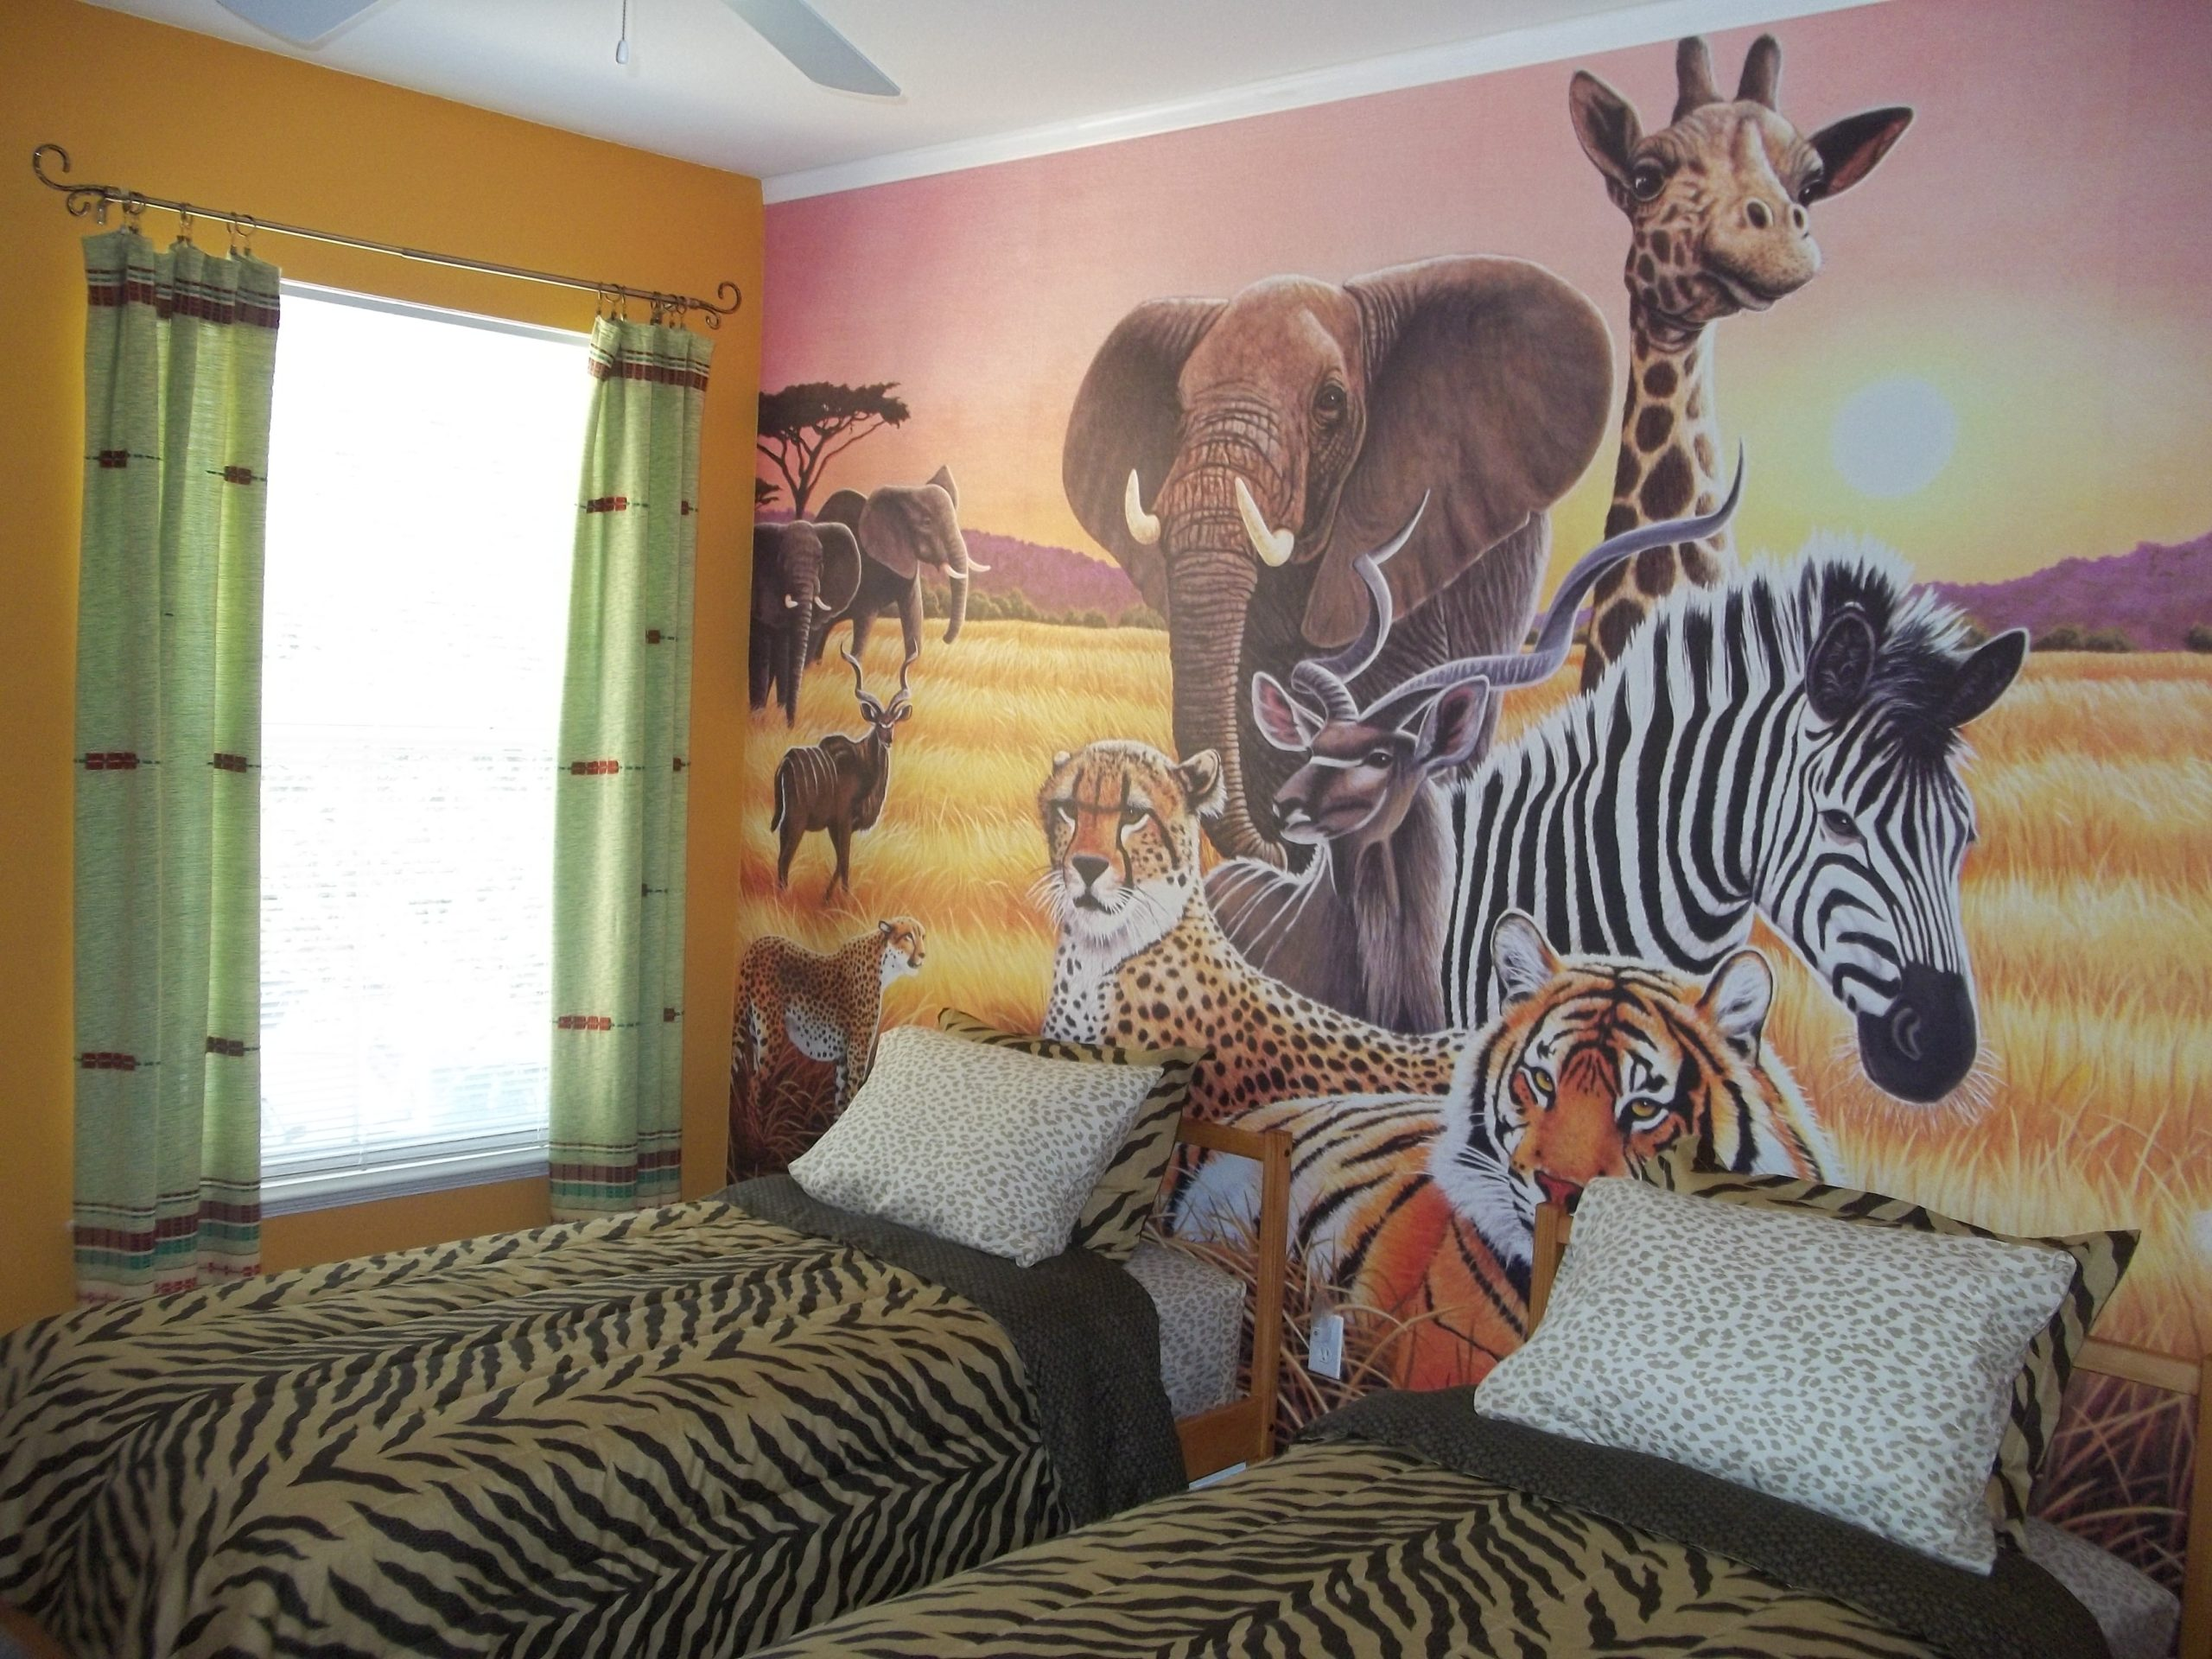 9 Marvelous Mural Wall Ideas For Kids Room To Copy Anchordeco Com